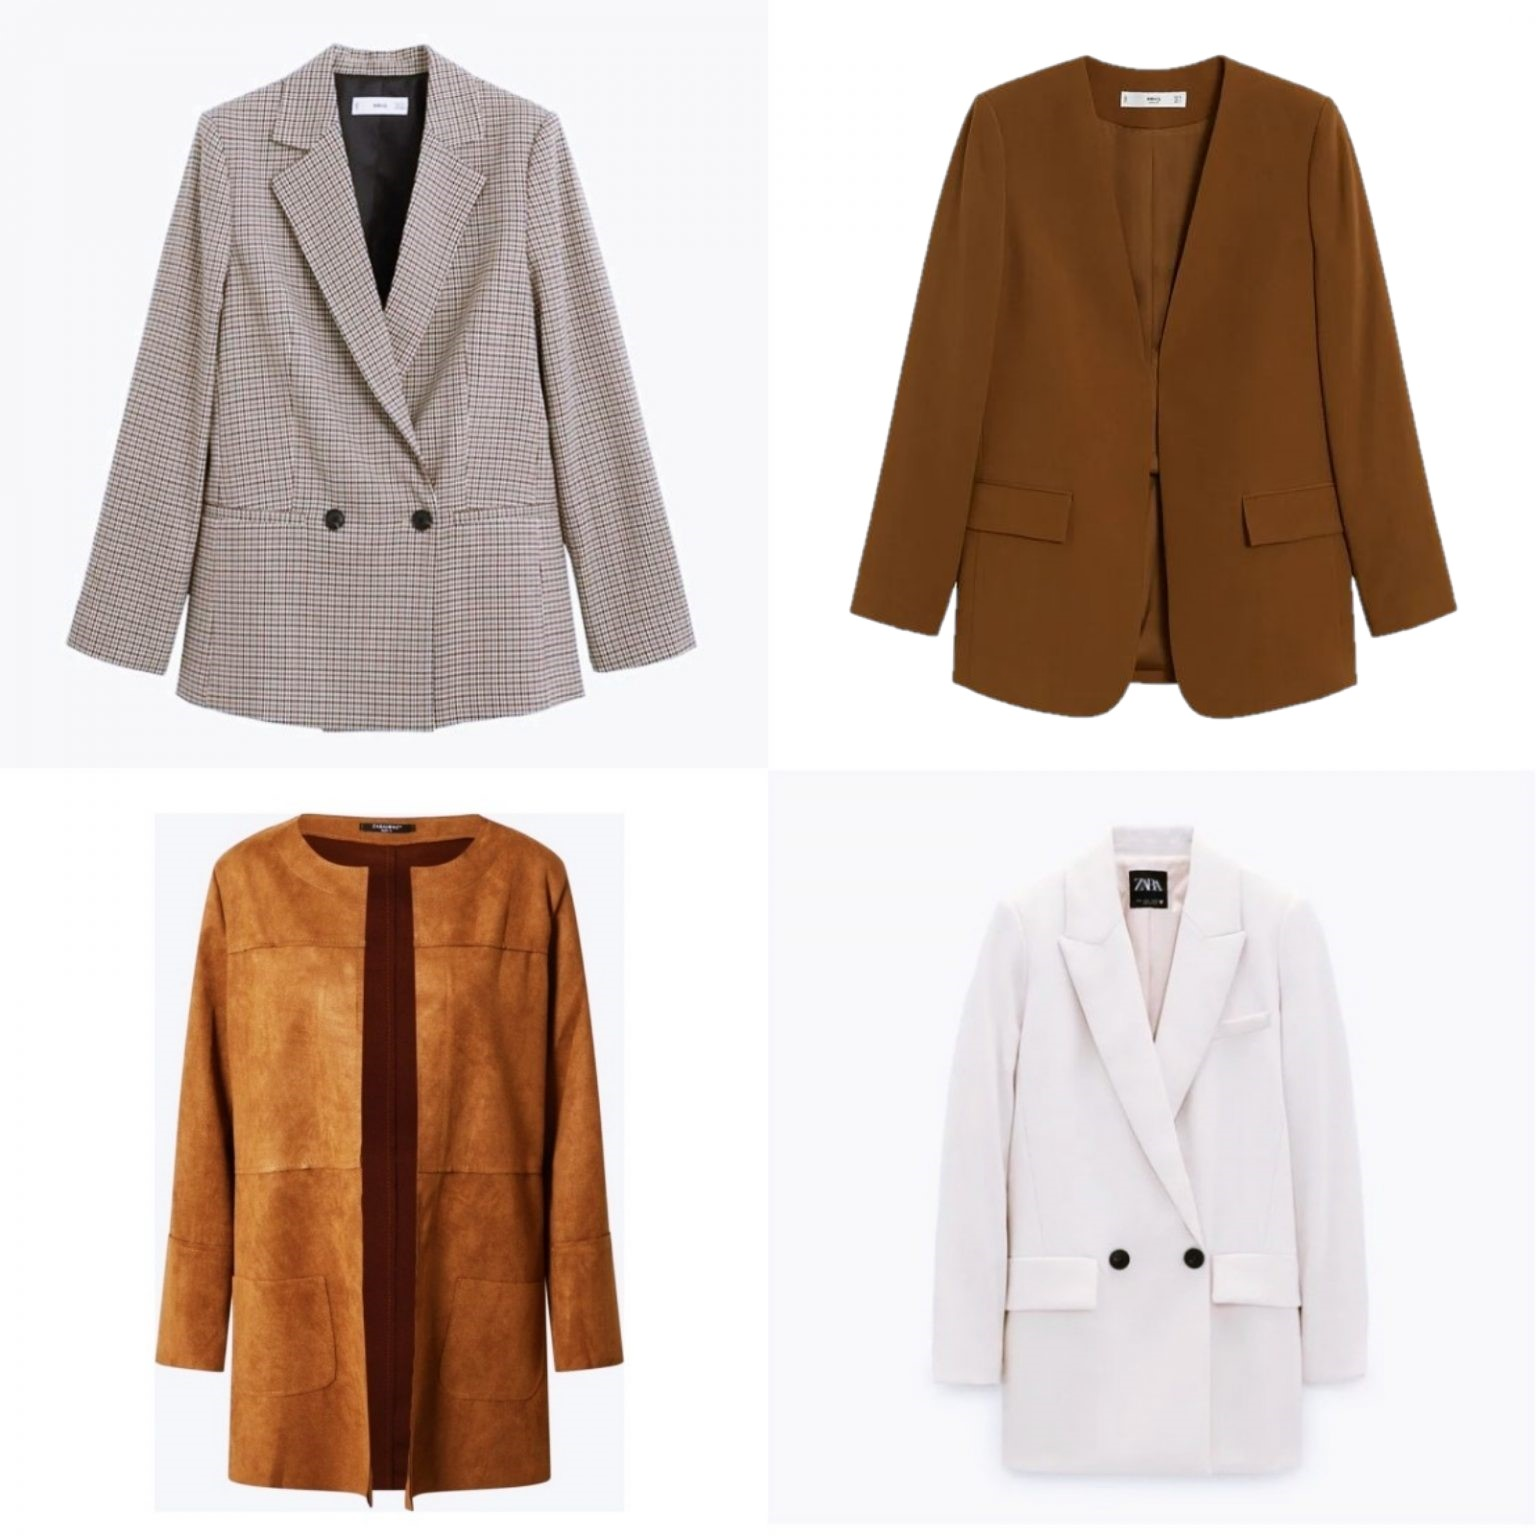 4 Fall Outfits with Blazers